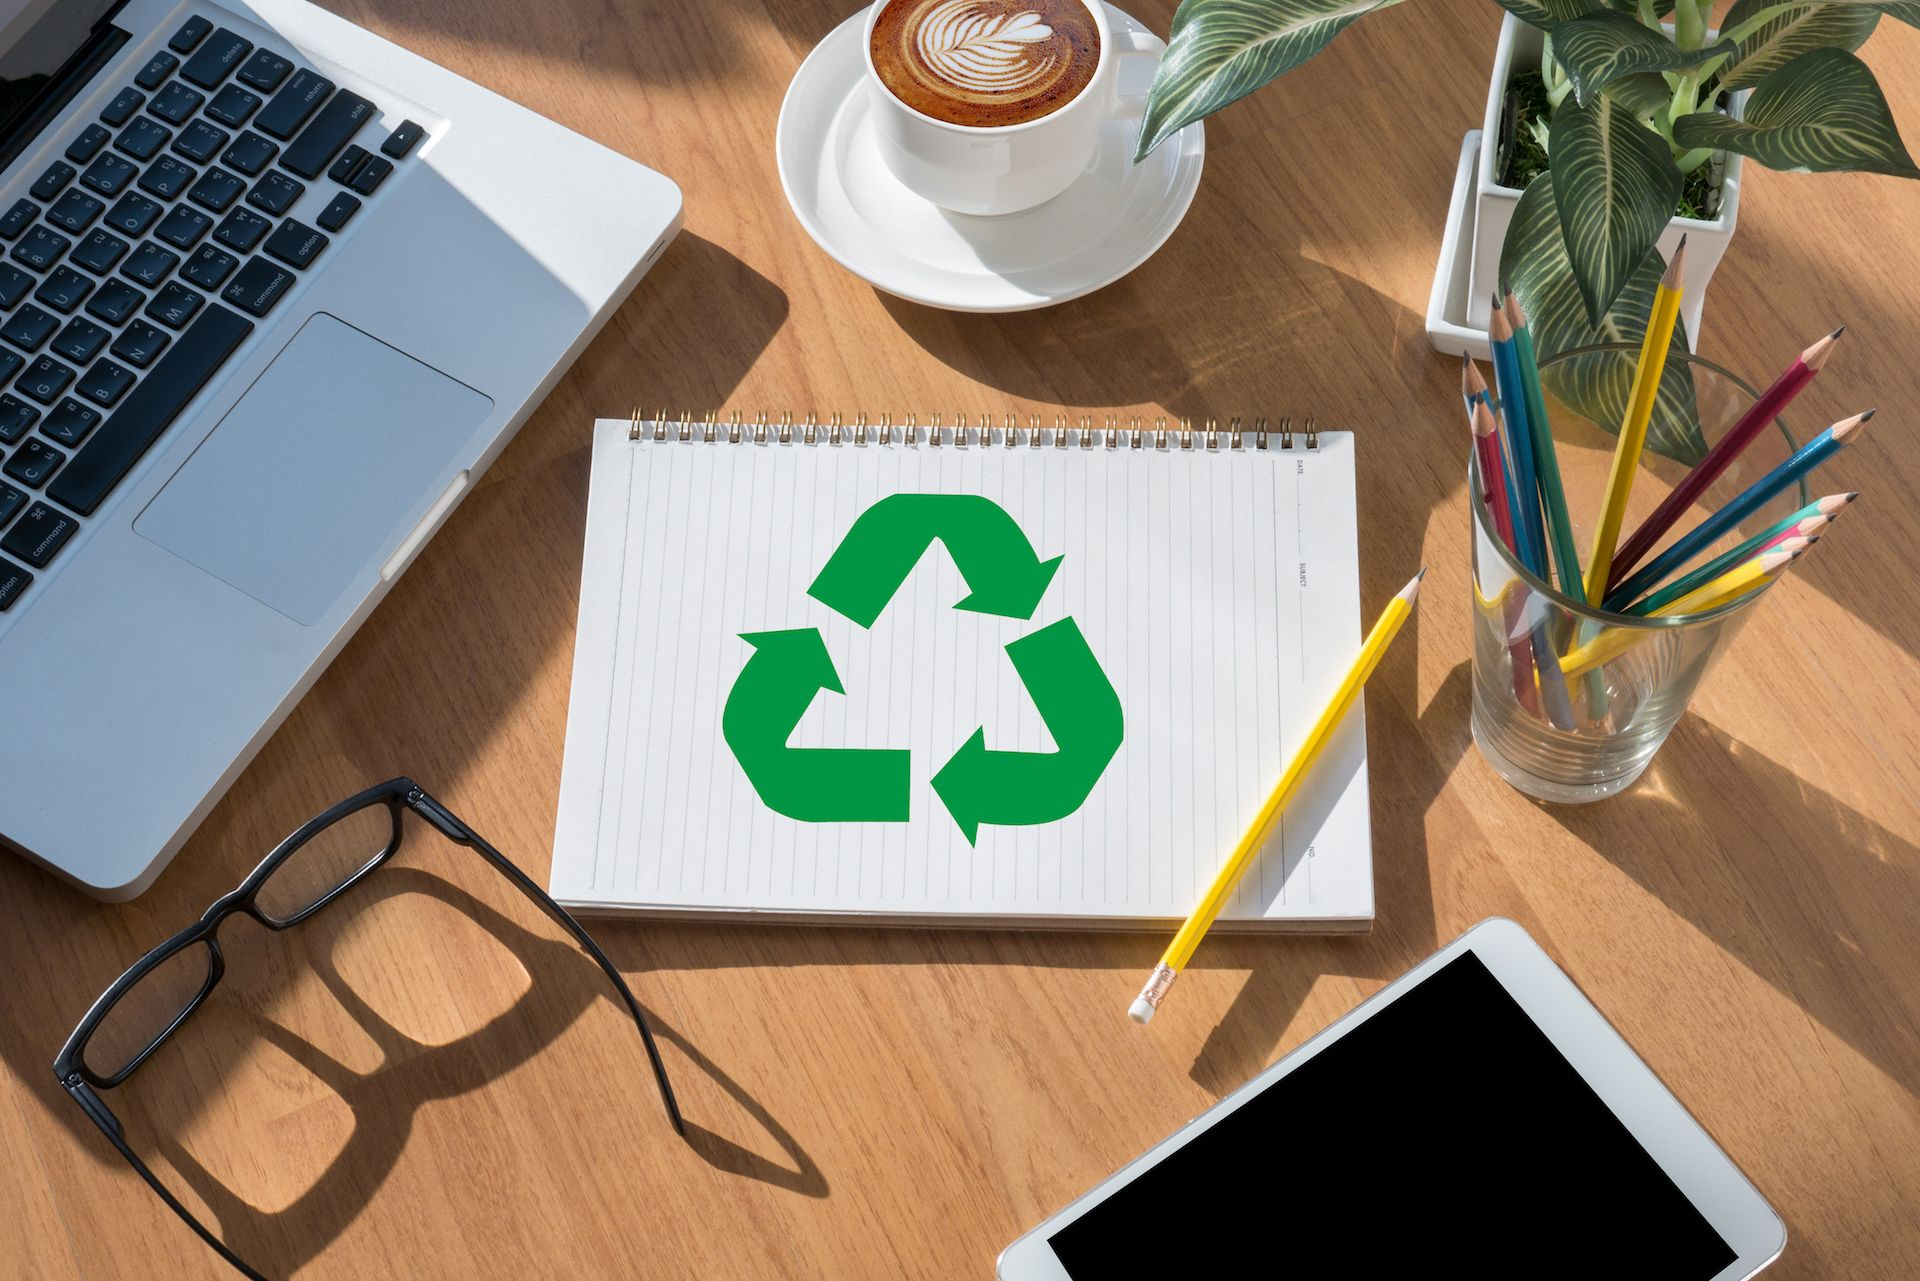 10 Ways to Repurpose Your Content The Right Way [Infographic]